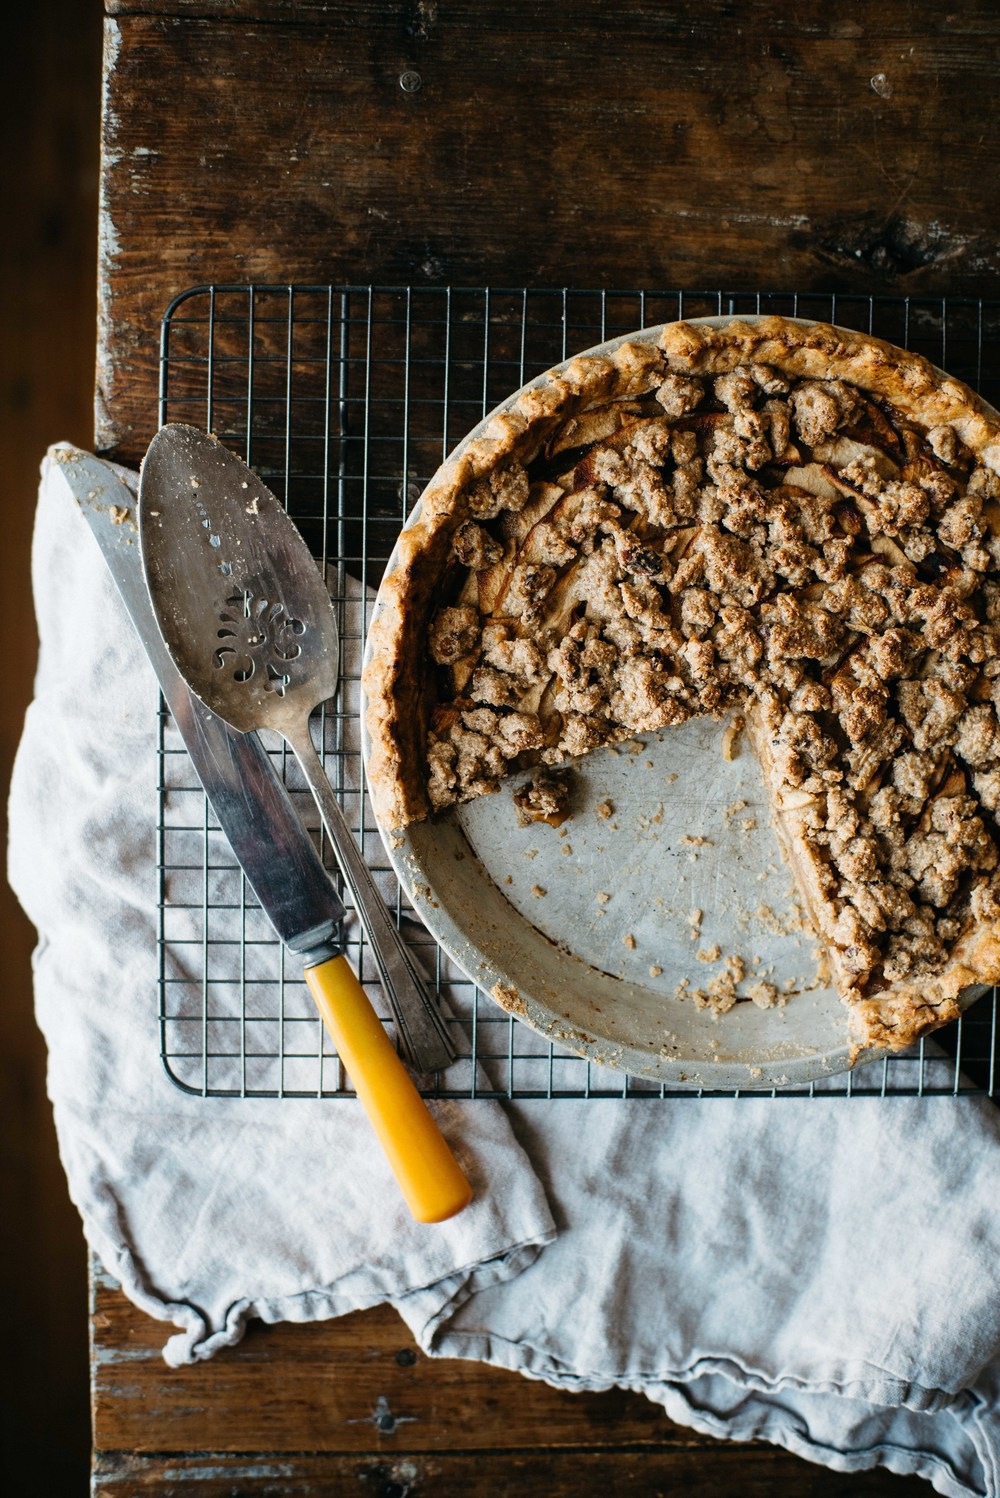 ginger-apple pie